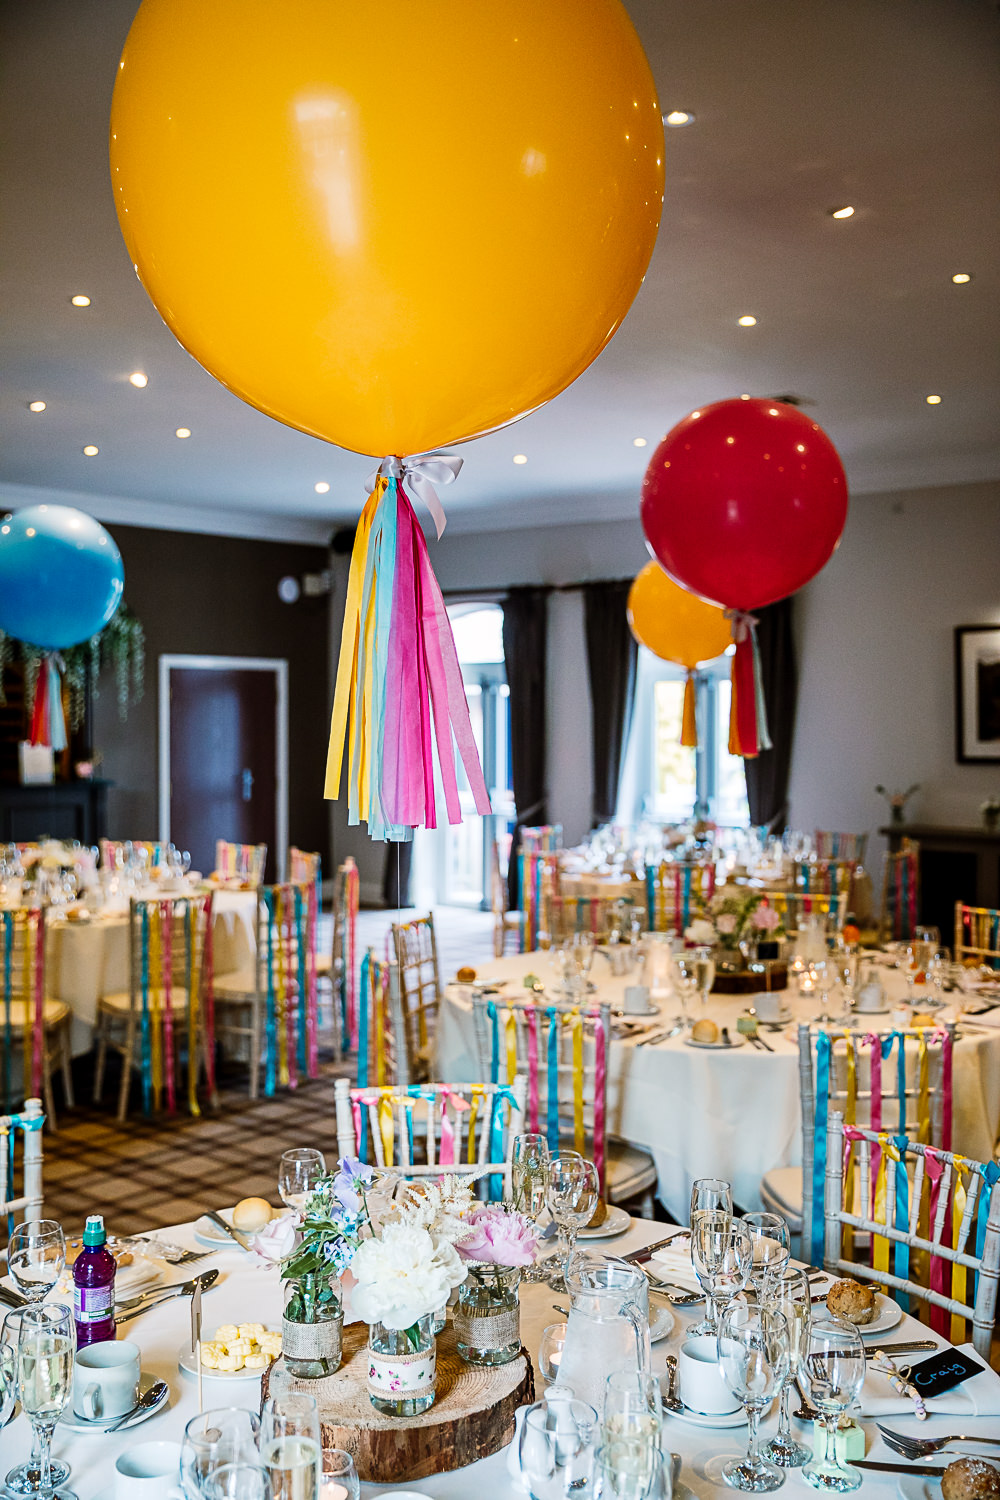 Reception Room Decor Giant Balloons Colourful Tassel Ribbons Coniston Hotel Wedding Hayley Baxter Photography